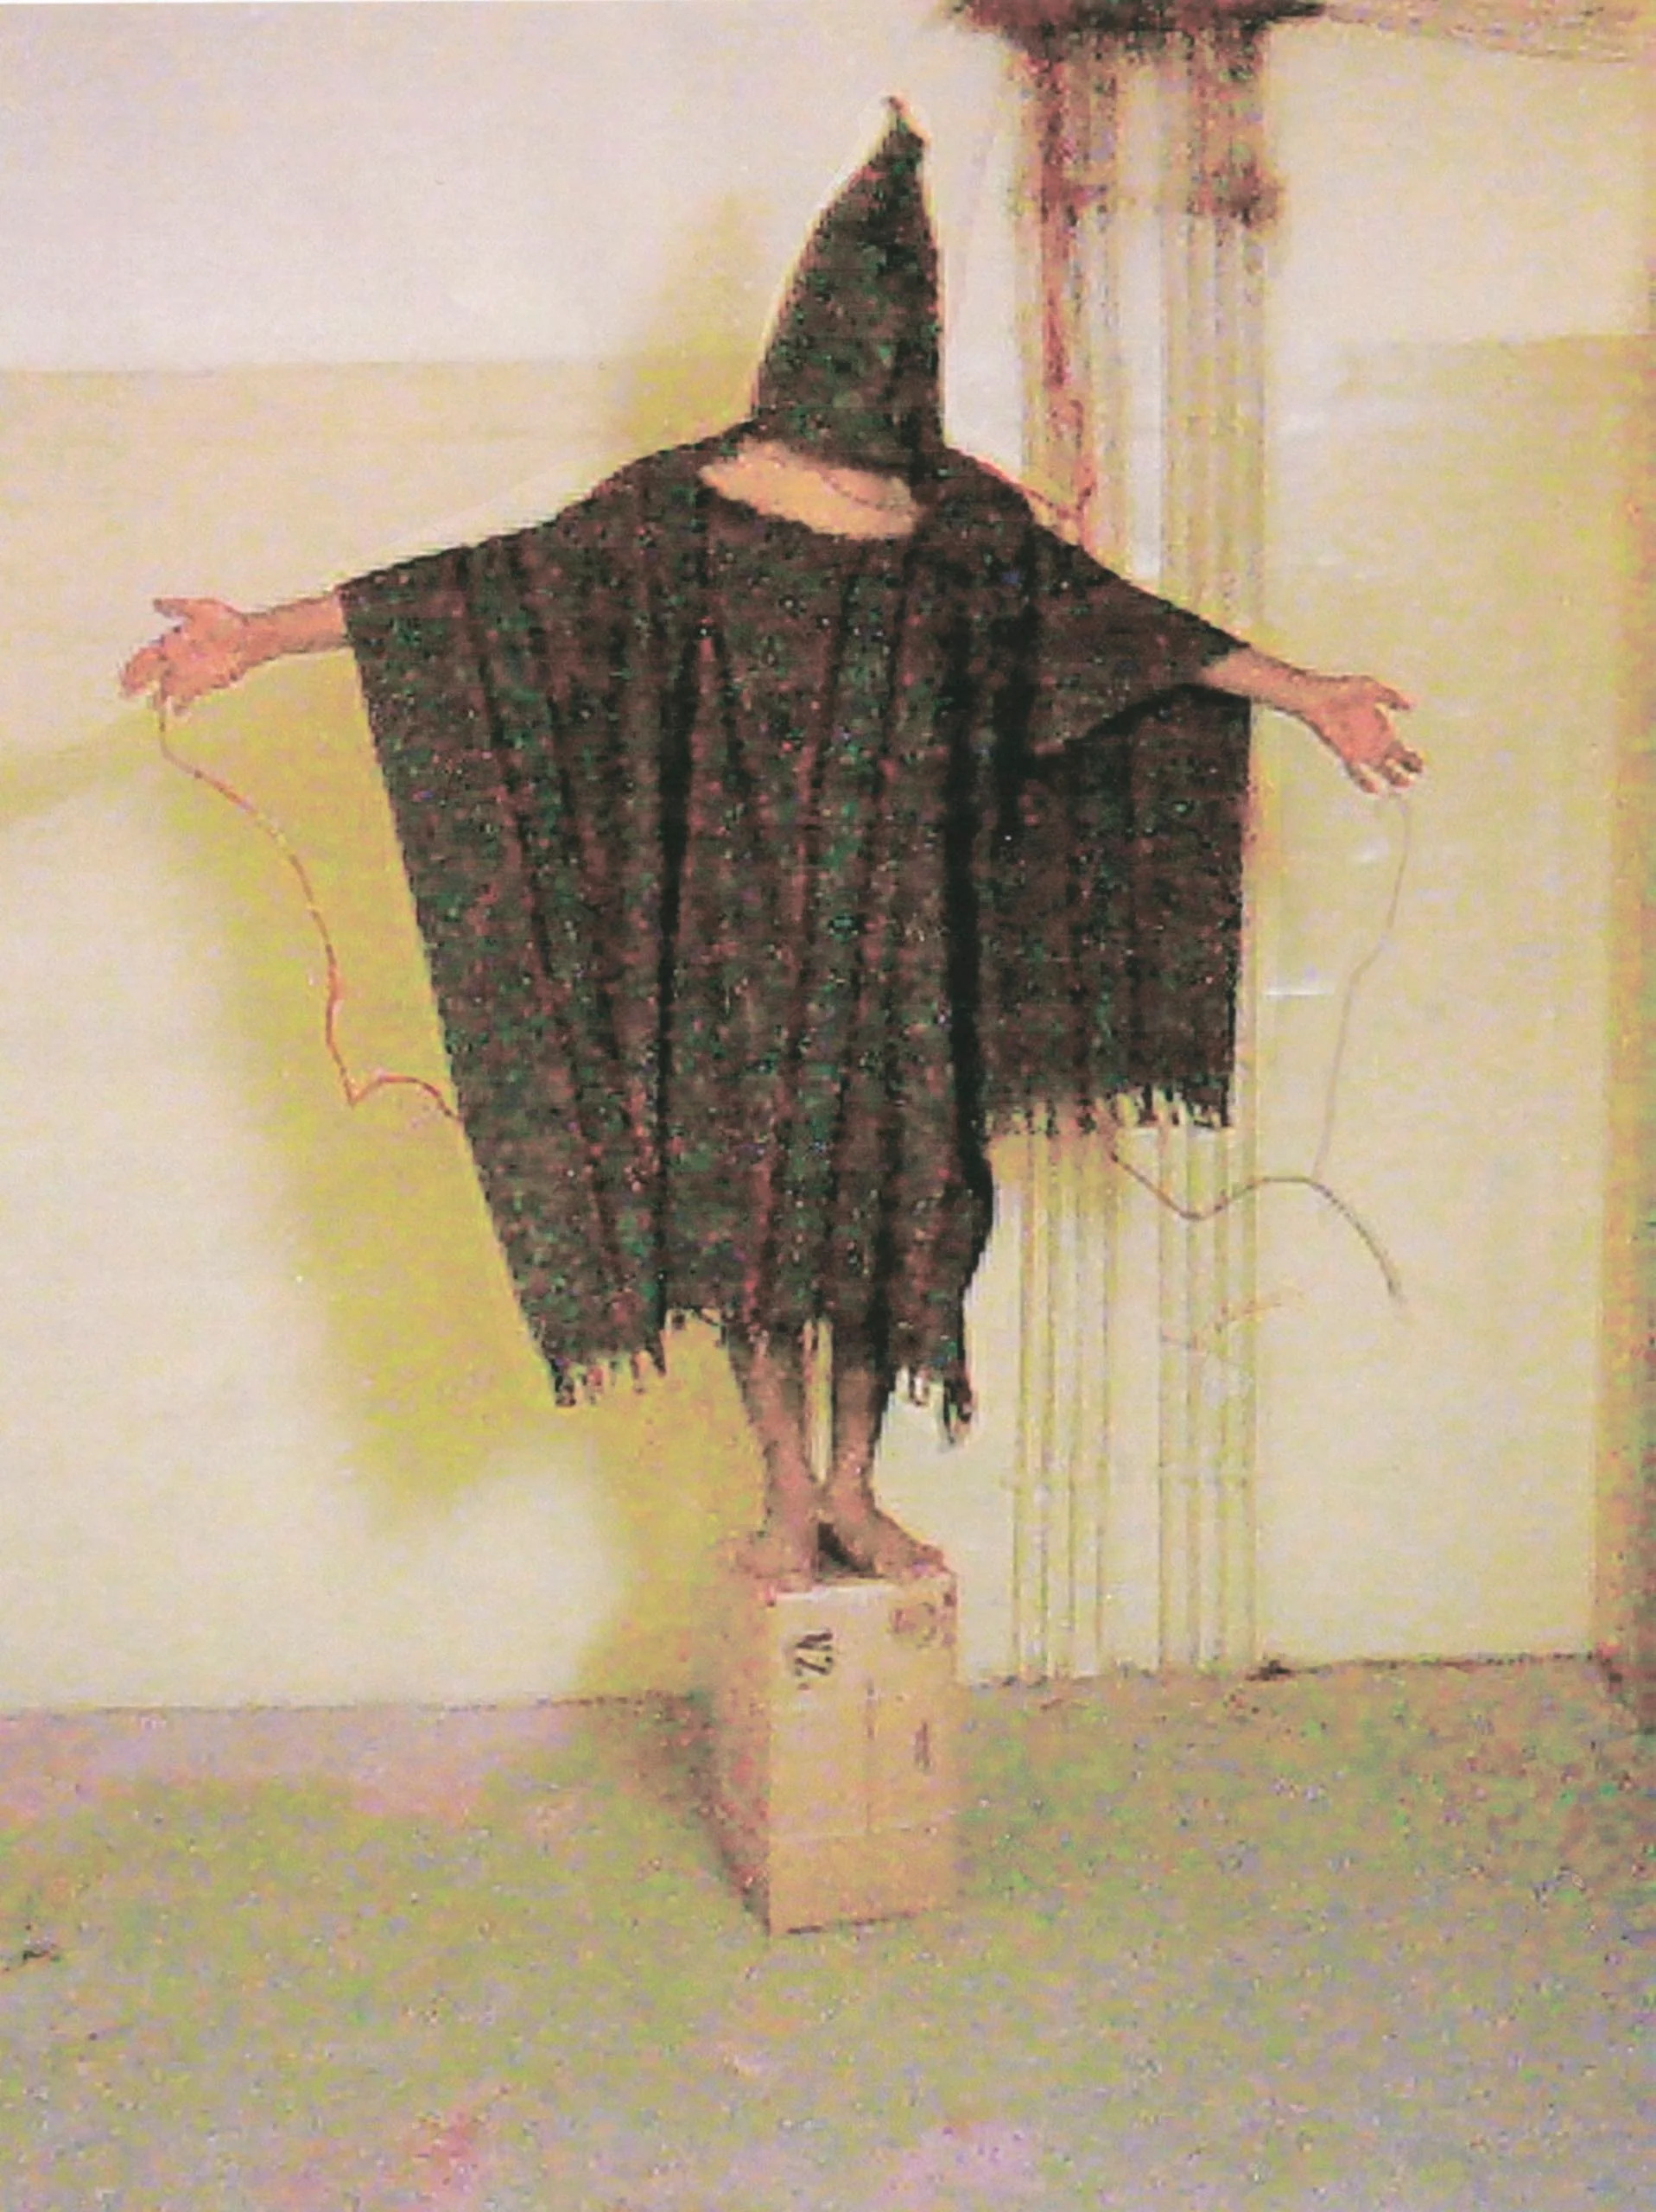 Abu Ghraib torture and prisoner abuse. AbuGhraibAbuse-standing-on-box.jpg